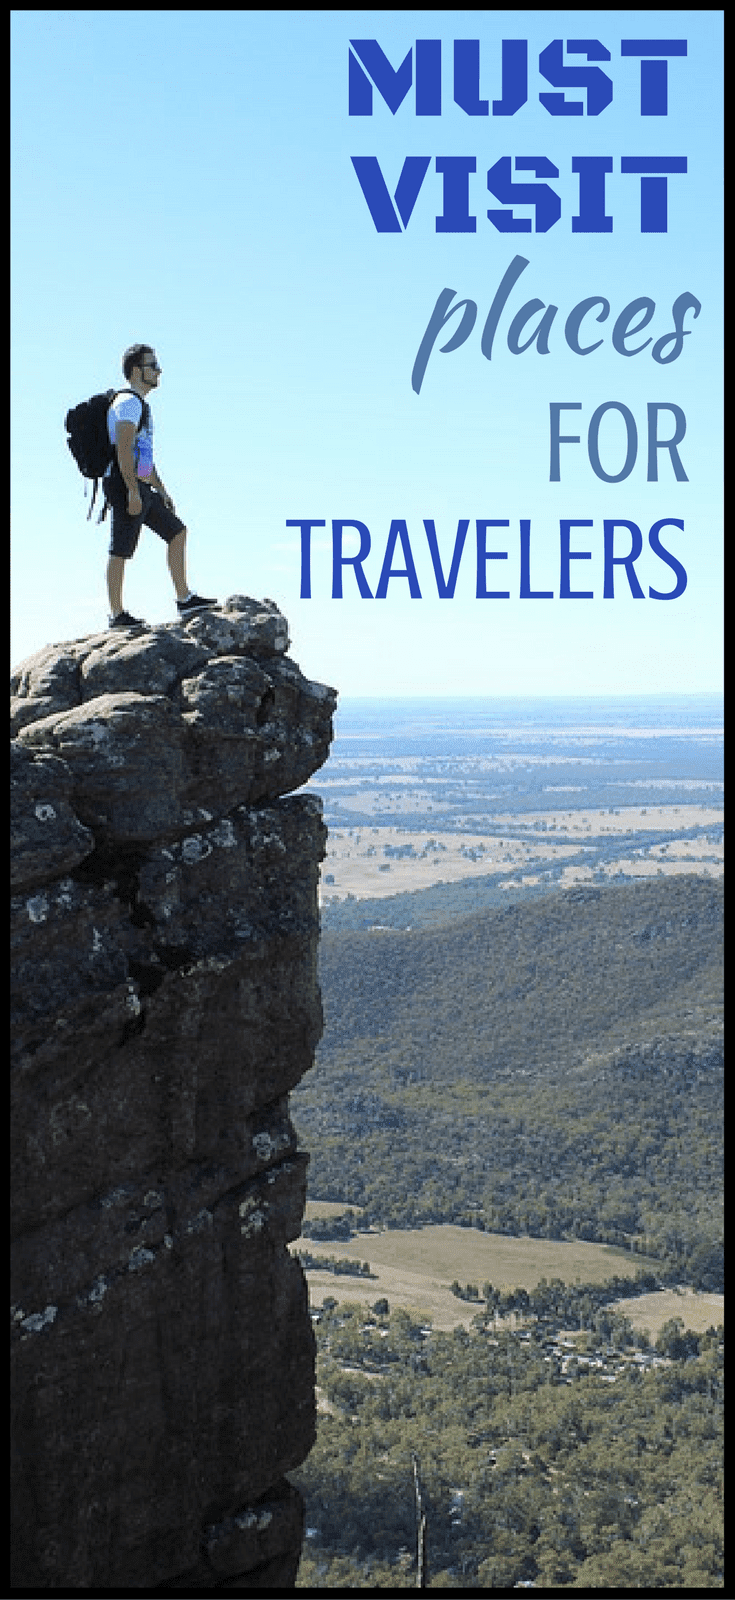 Must Visit Places For Travelers